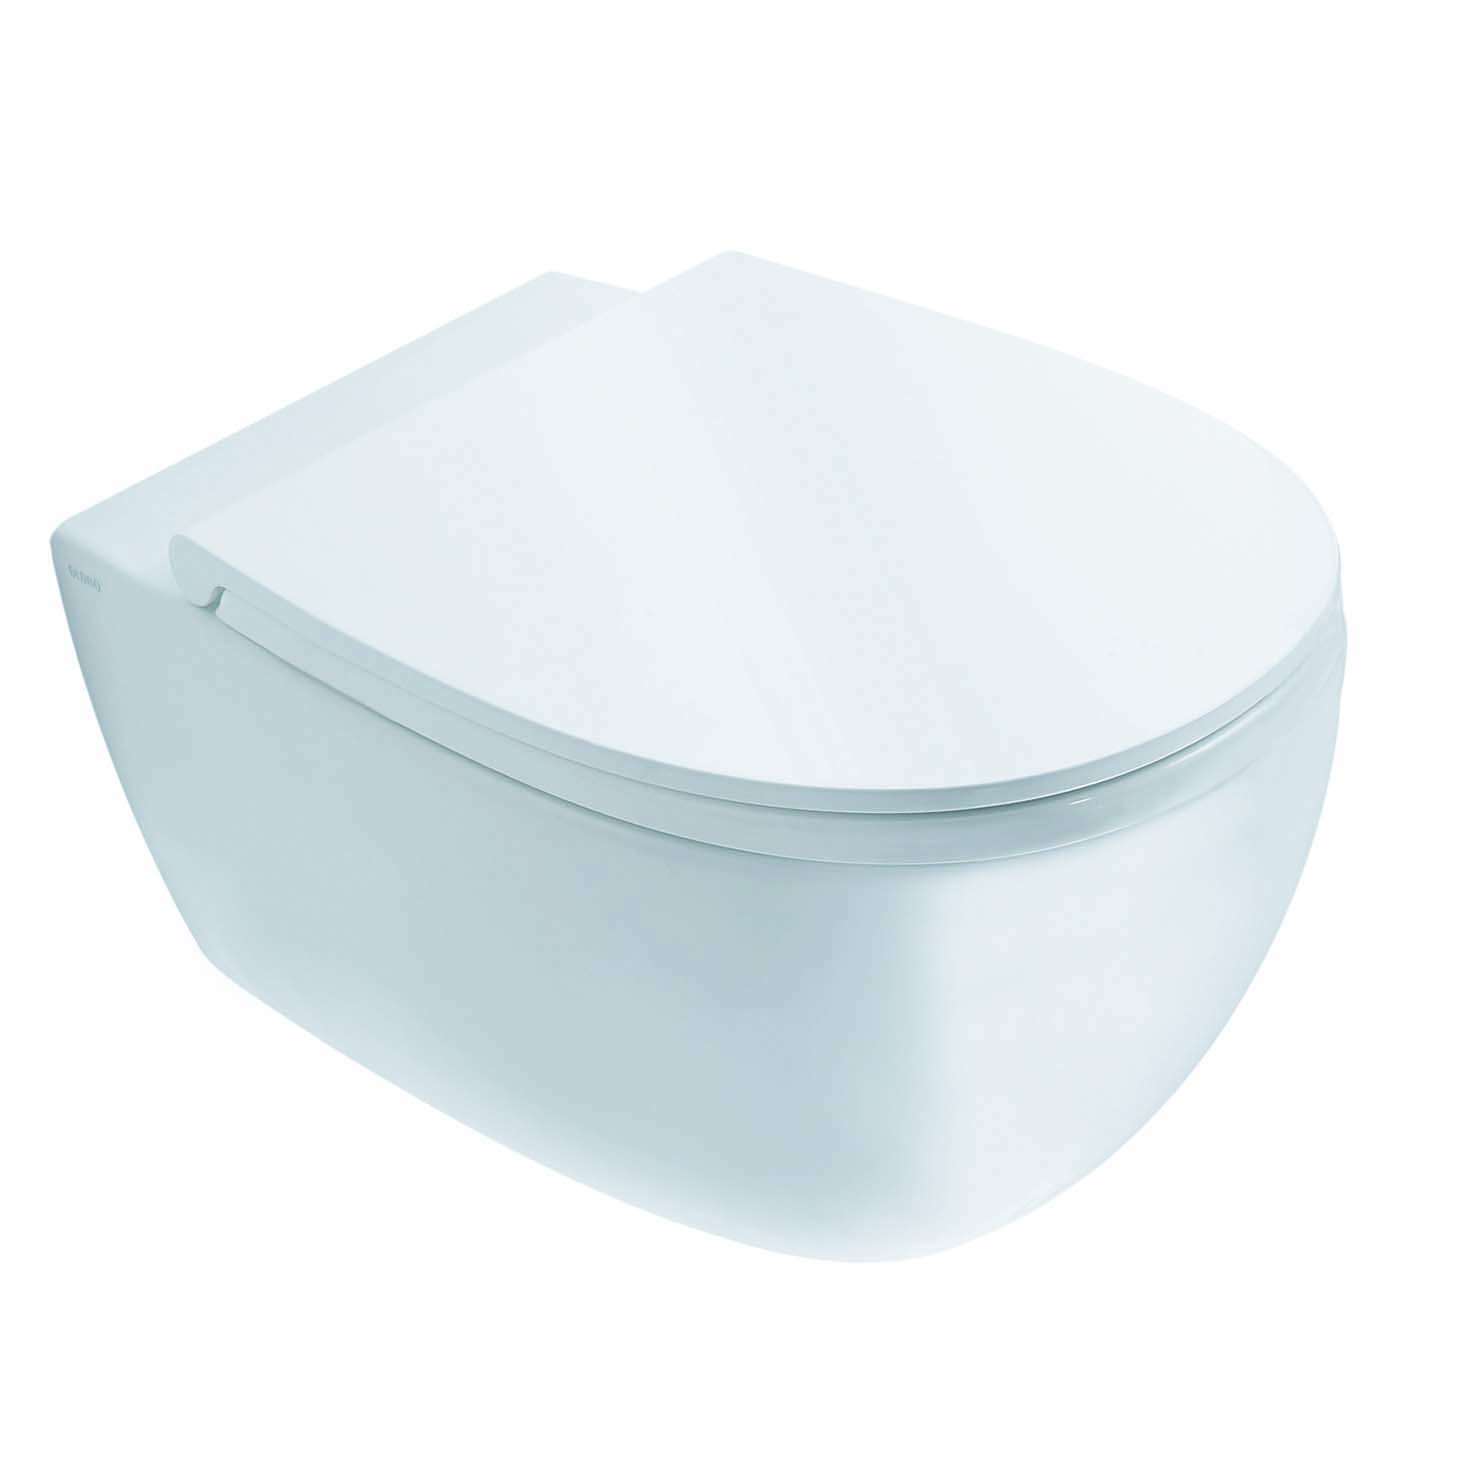 Globo 4ALL toiletzitting met softclose en quick-release 36 x 45 cm, wit